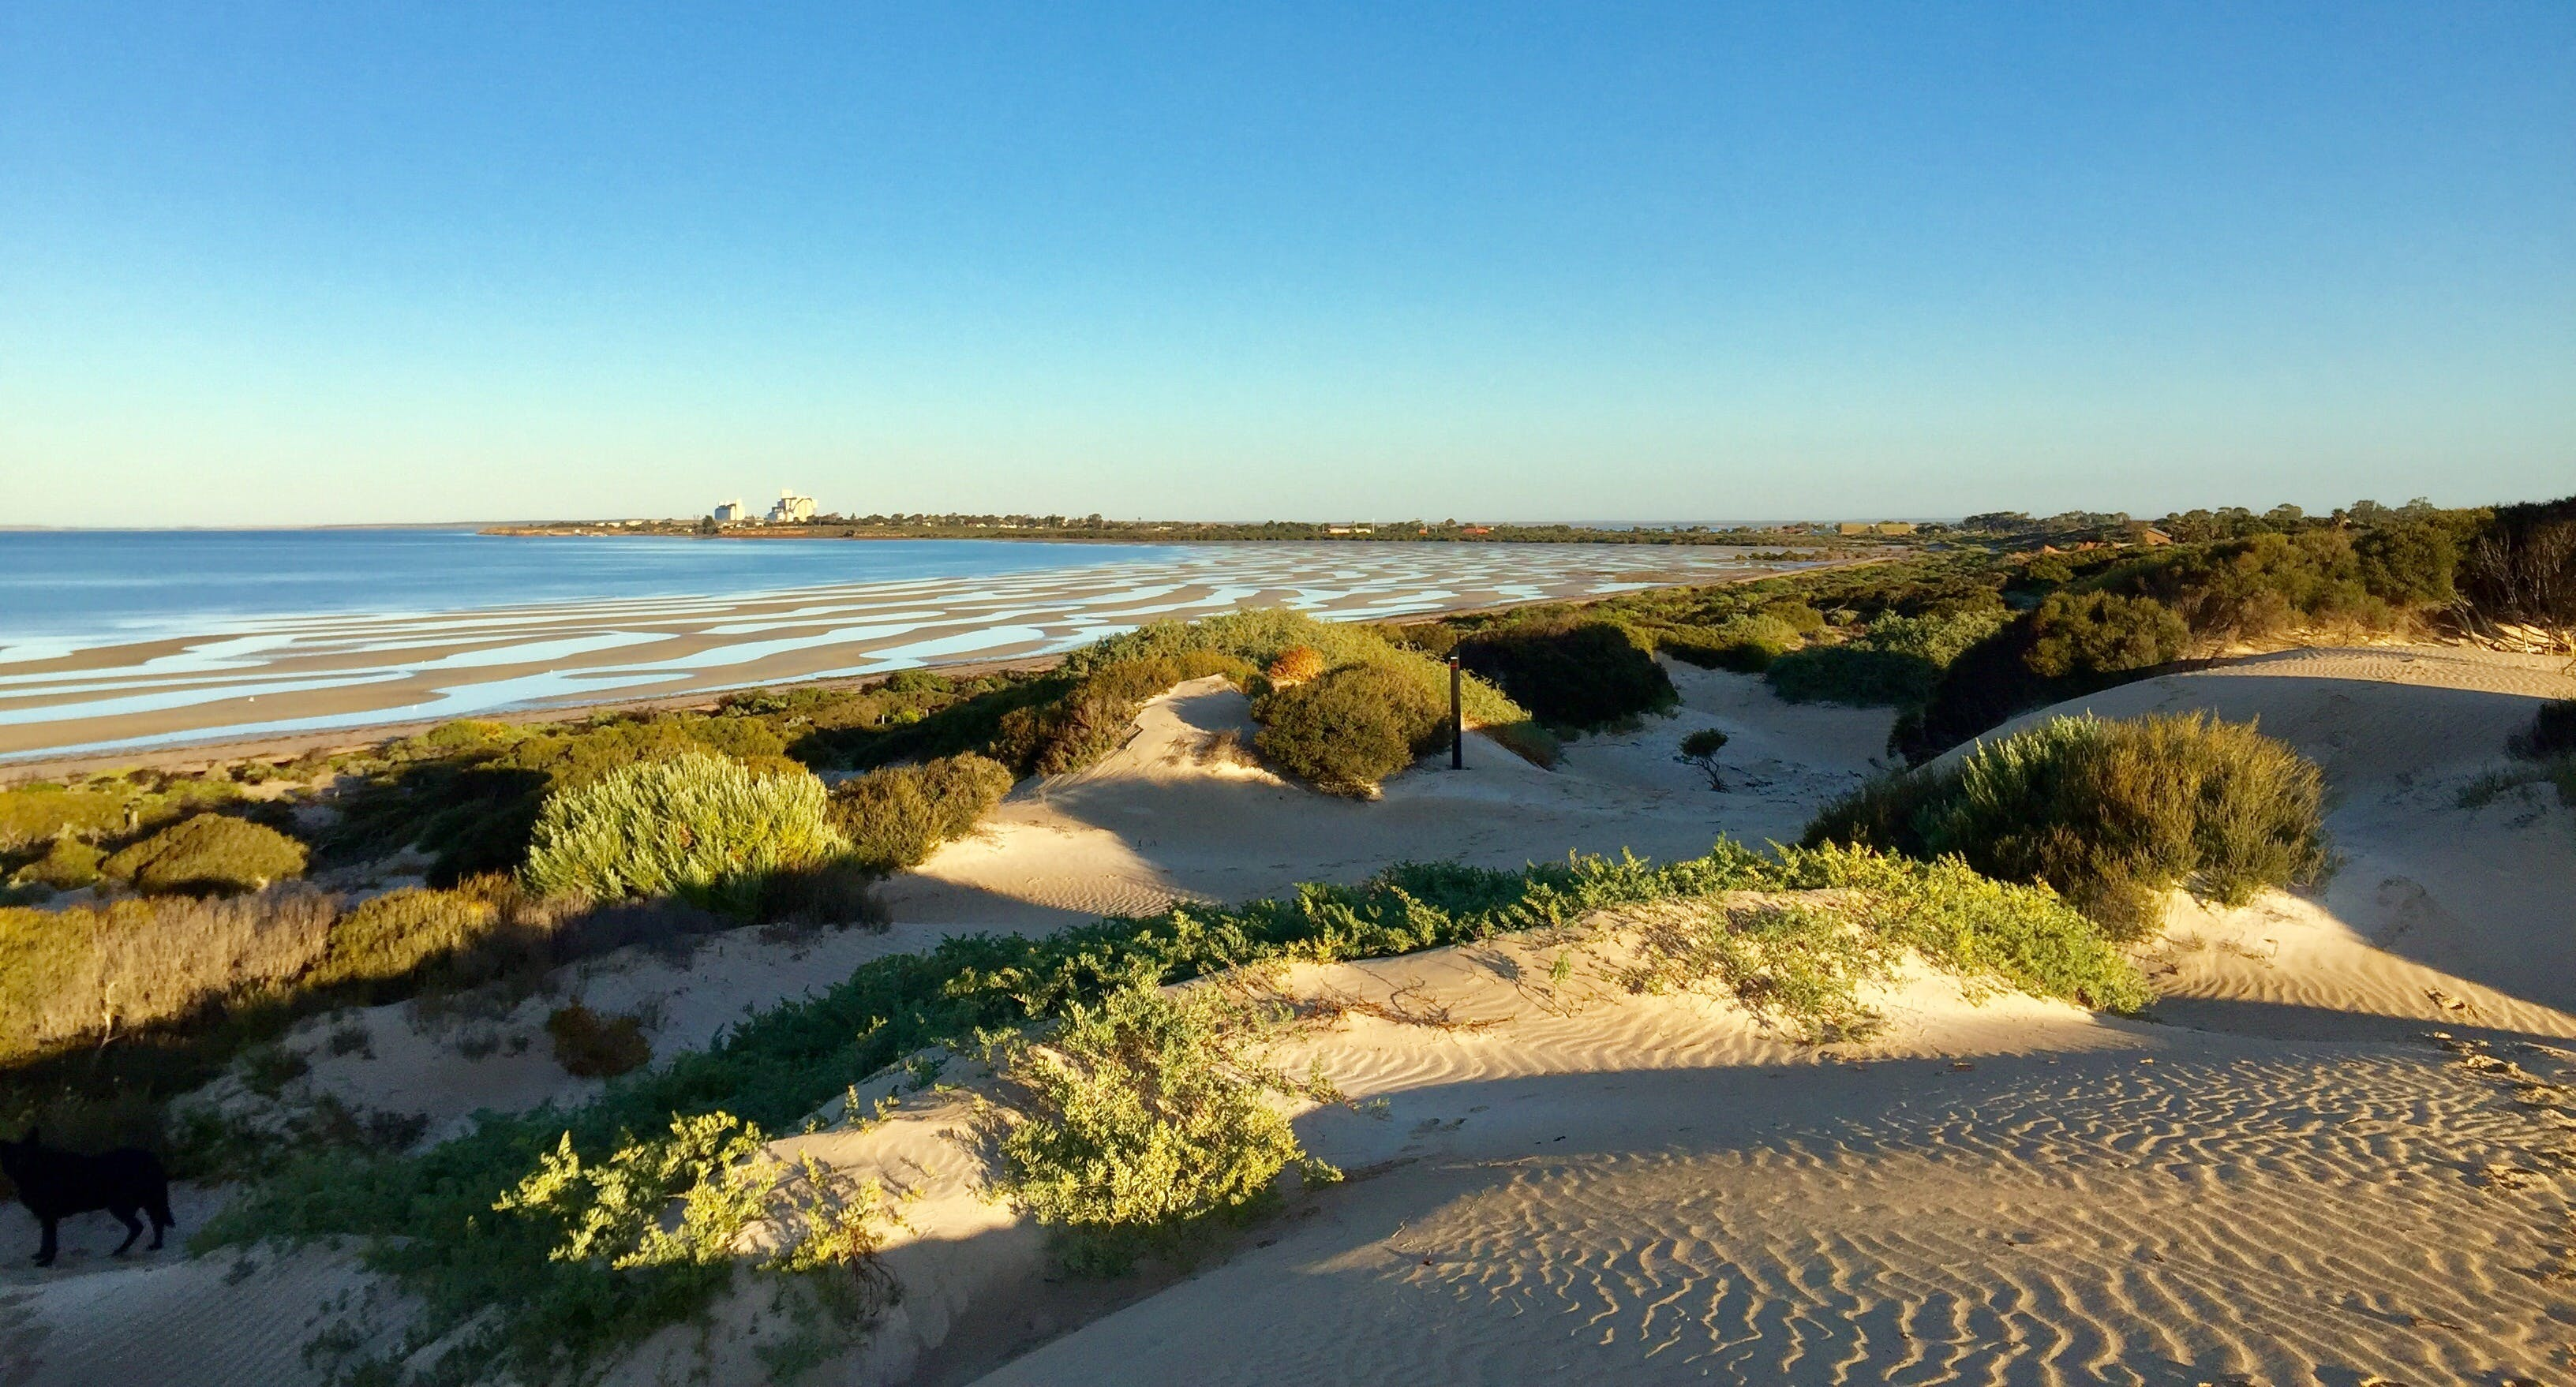 Shelly Beach Dune Walk Trail - Find Attractions